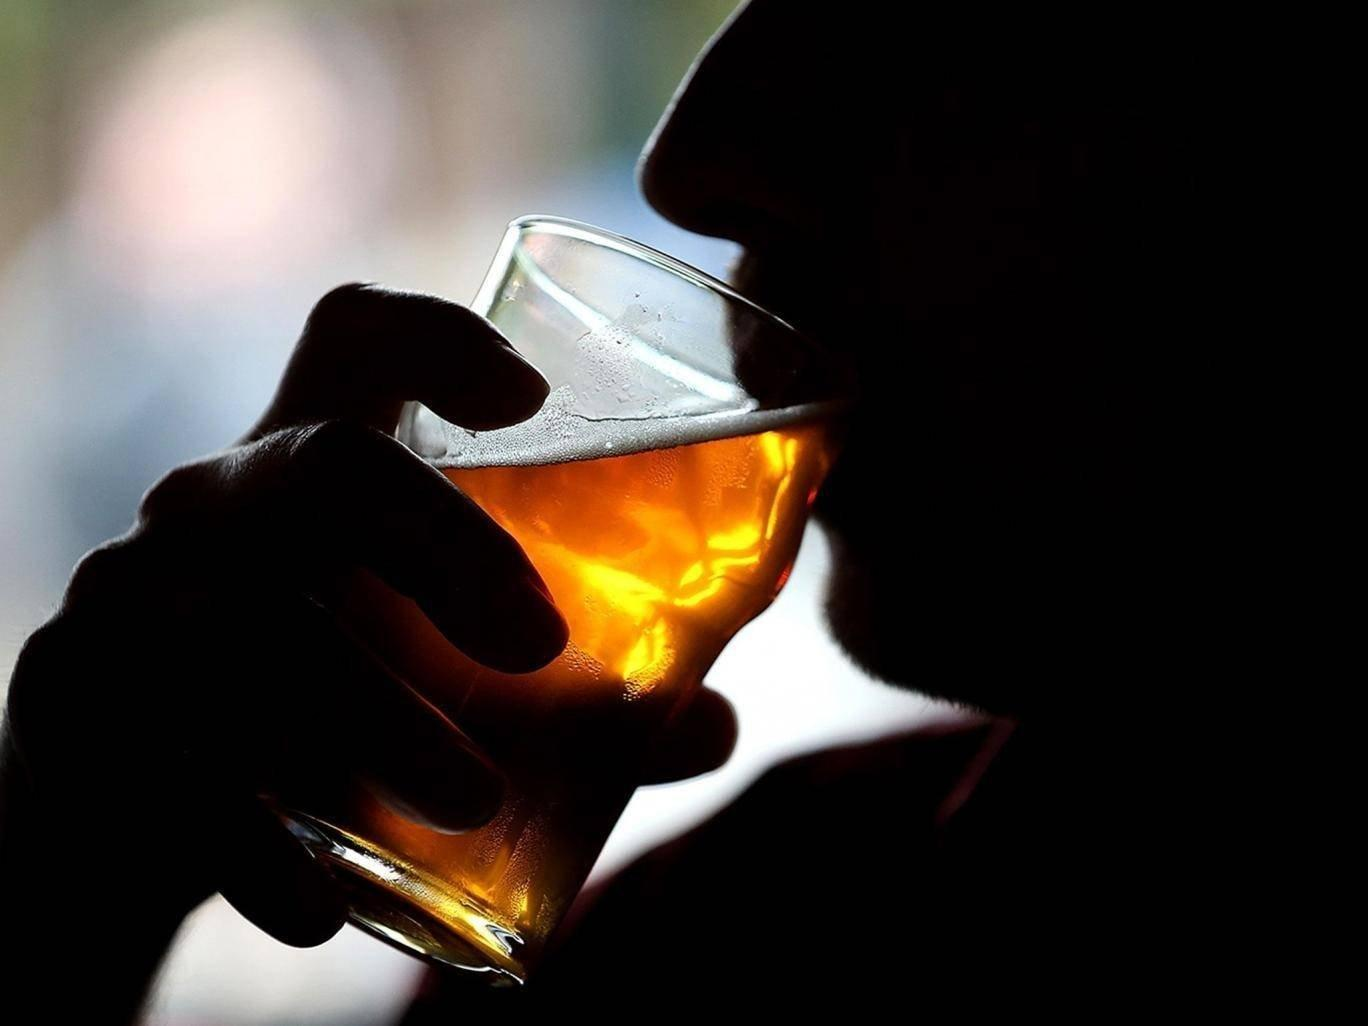 Drinking wine or beer up to four times a week can protect against diabetes, researchers say